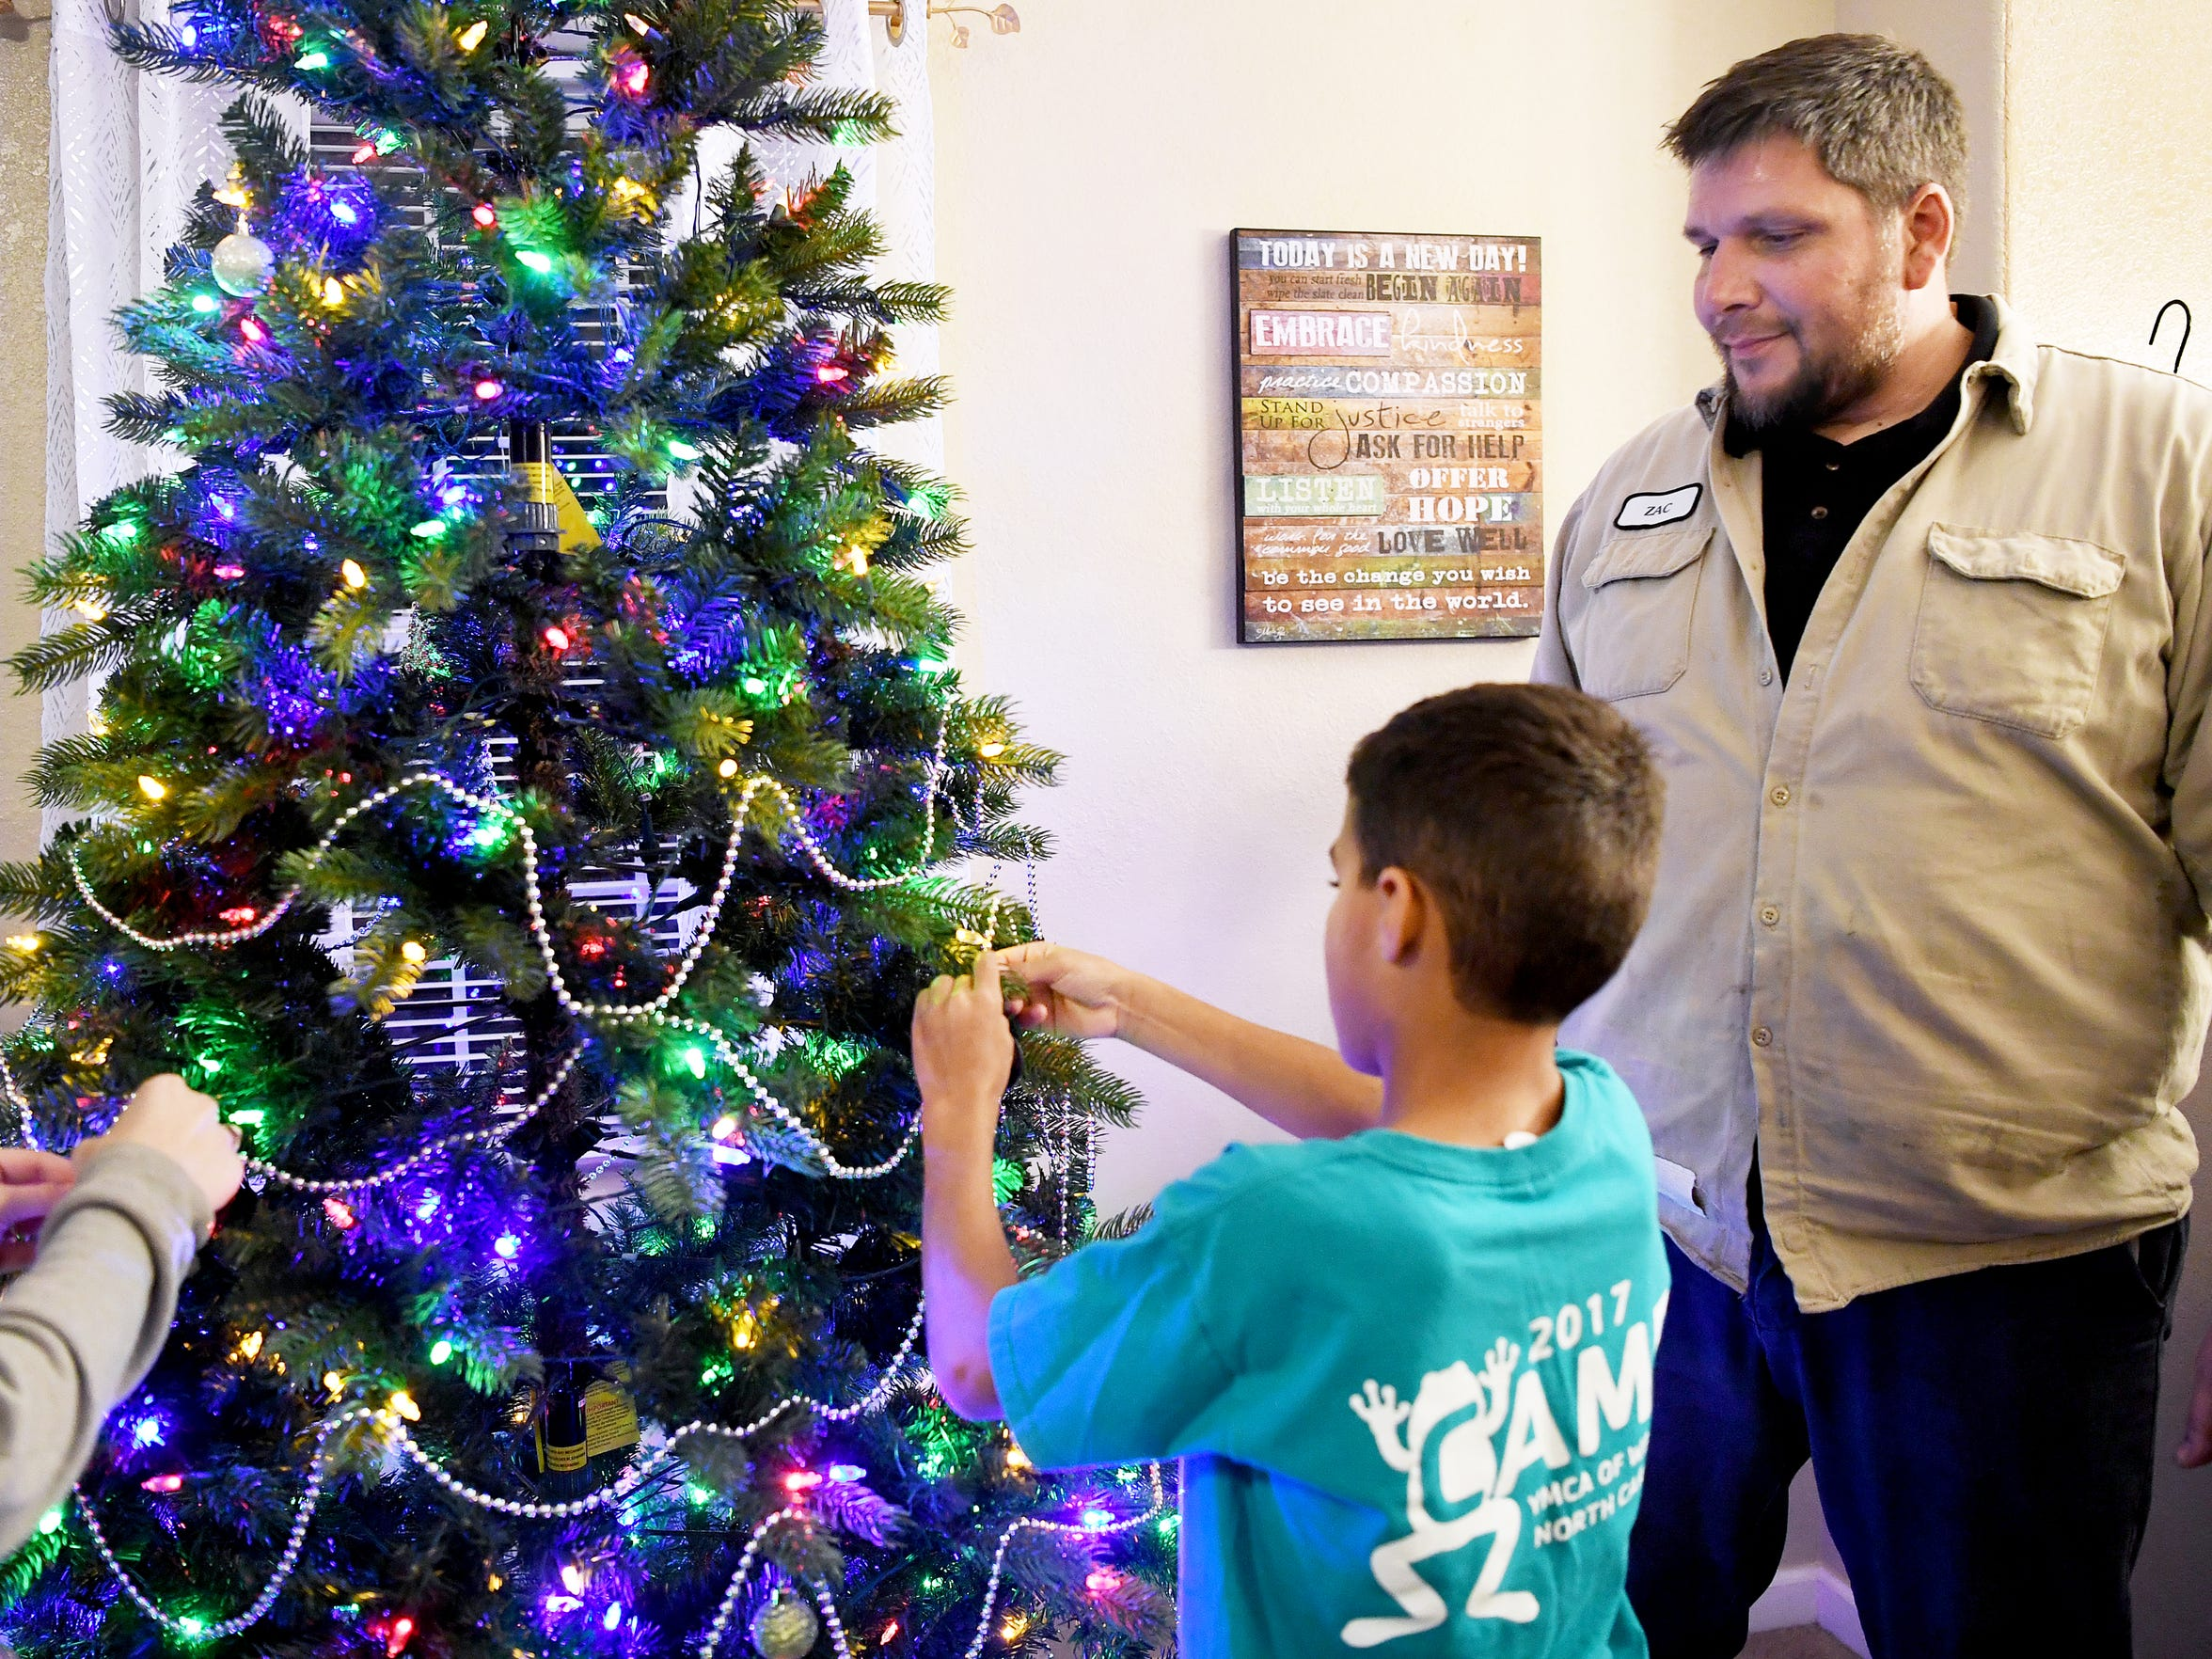 Zack Wyatt watches as Emanie, a foster child in his care, helps decorate the Christmas tree November 30, 2017.